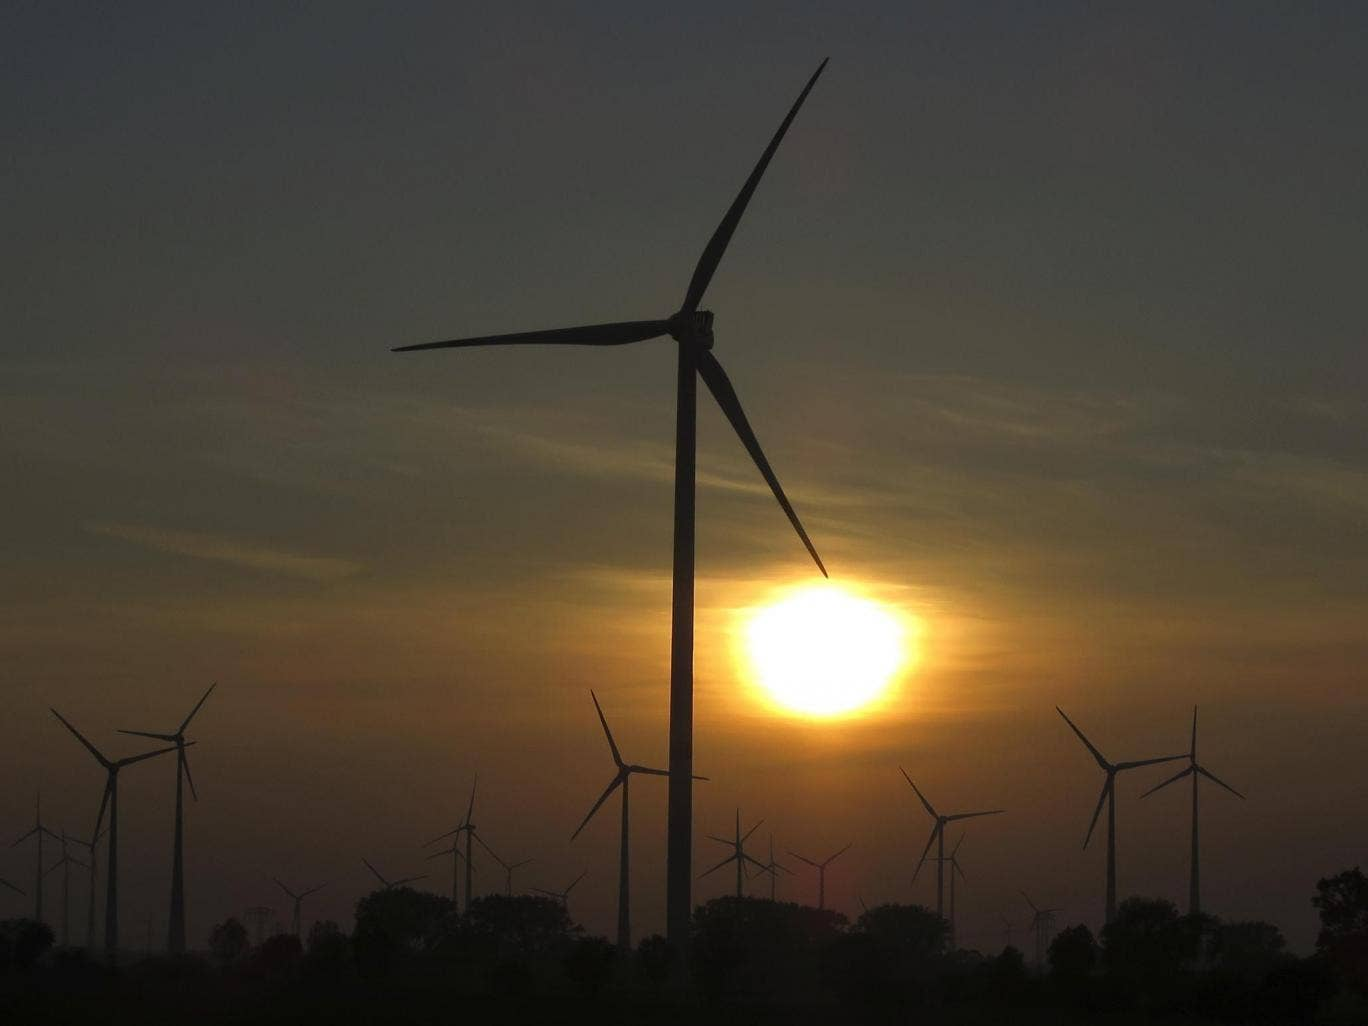 Germany Produces Enough Renewable Energy In Six Months To Power Addition Wind Plant Schematic Diagram Homemade Countrys Households For An Entire Year The Independent